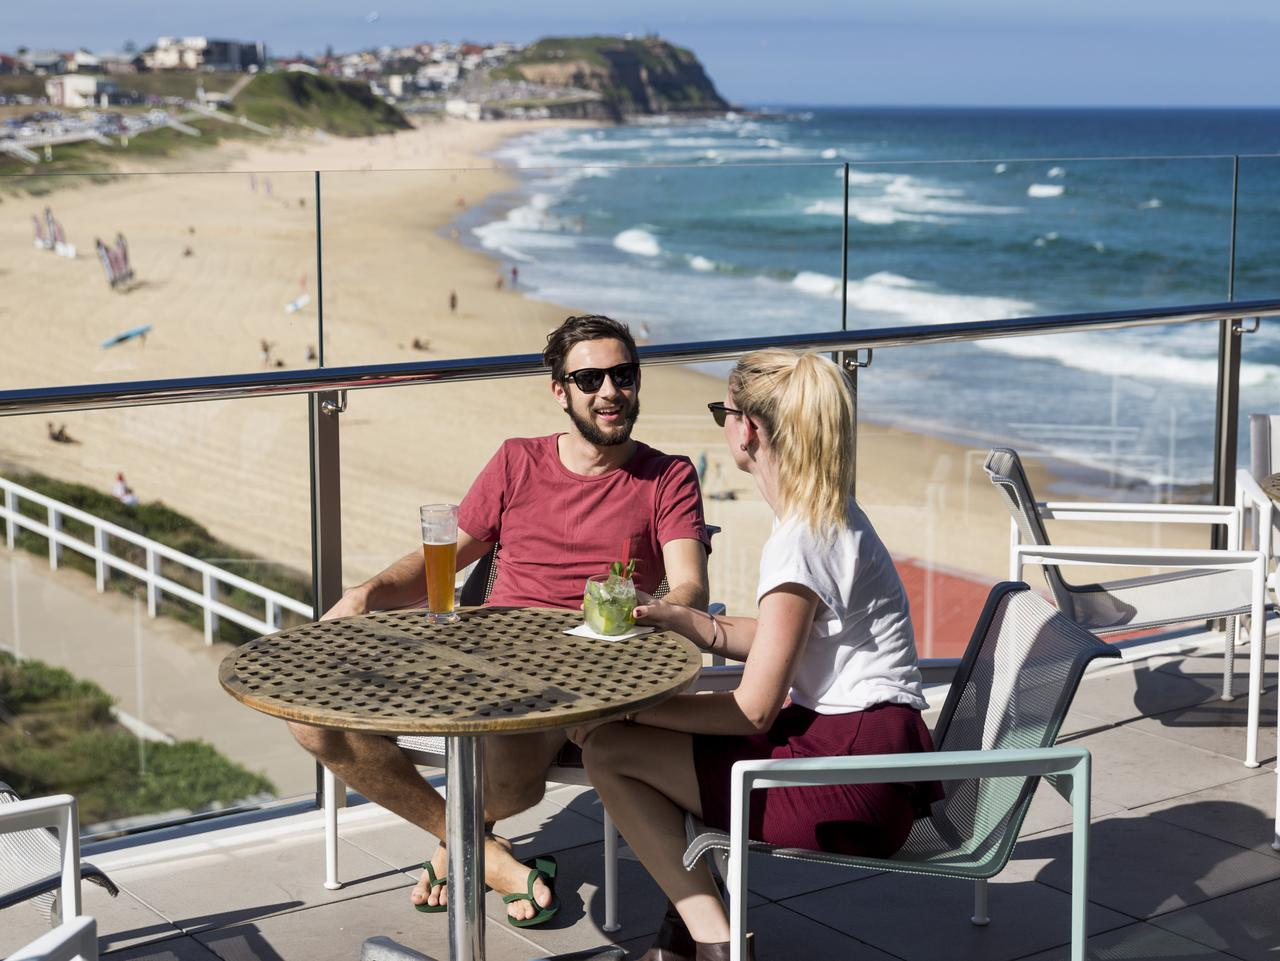 Enjoy a drink with a view at the Surfhouse Restaurant, Merewether Surfhouse.